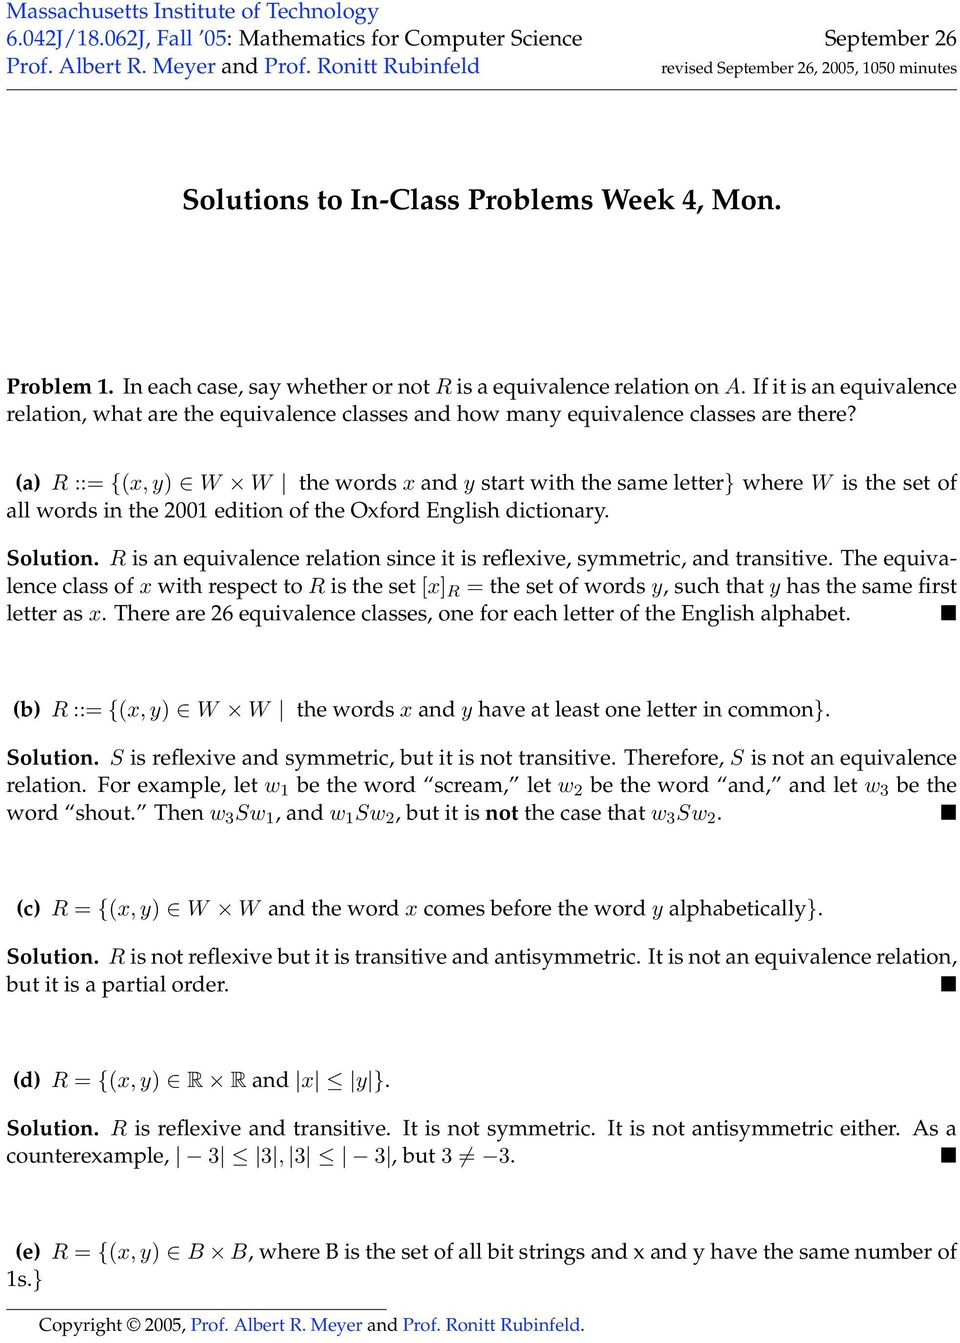 If it is an equivalence relation, what are the equivalence classes and how many equivalence classes are there?